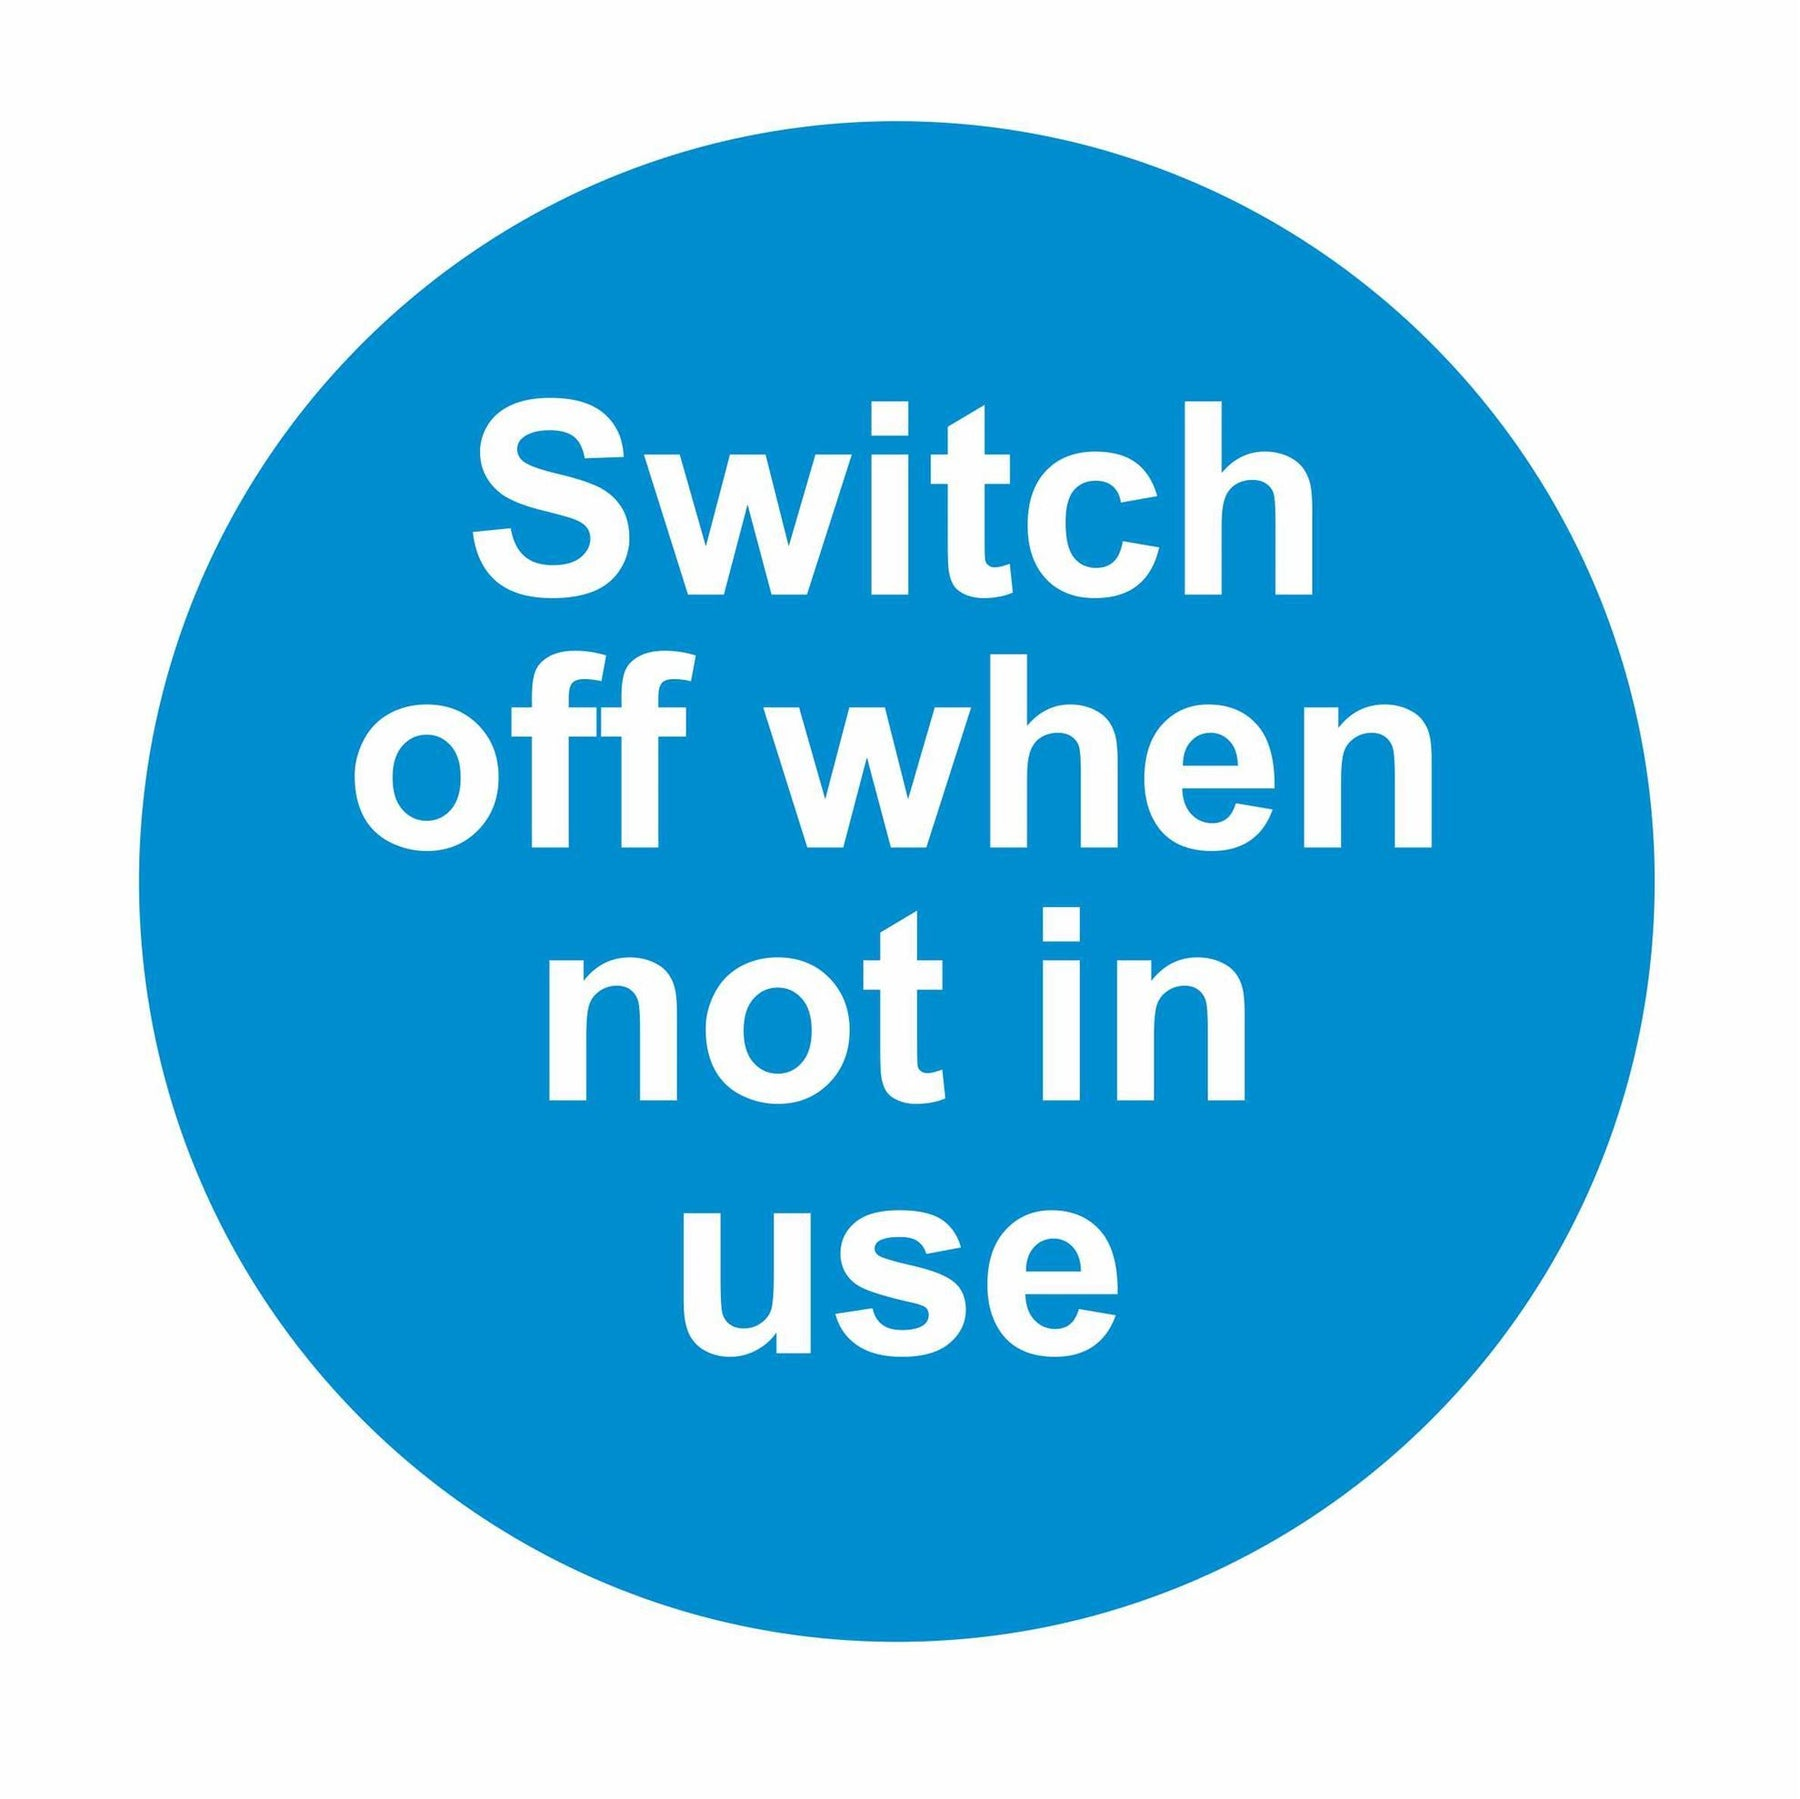 SWITCH OFF WHEN NOT IN USE - SELF ADHESIVE STICKER